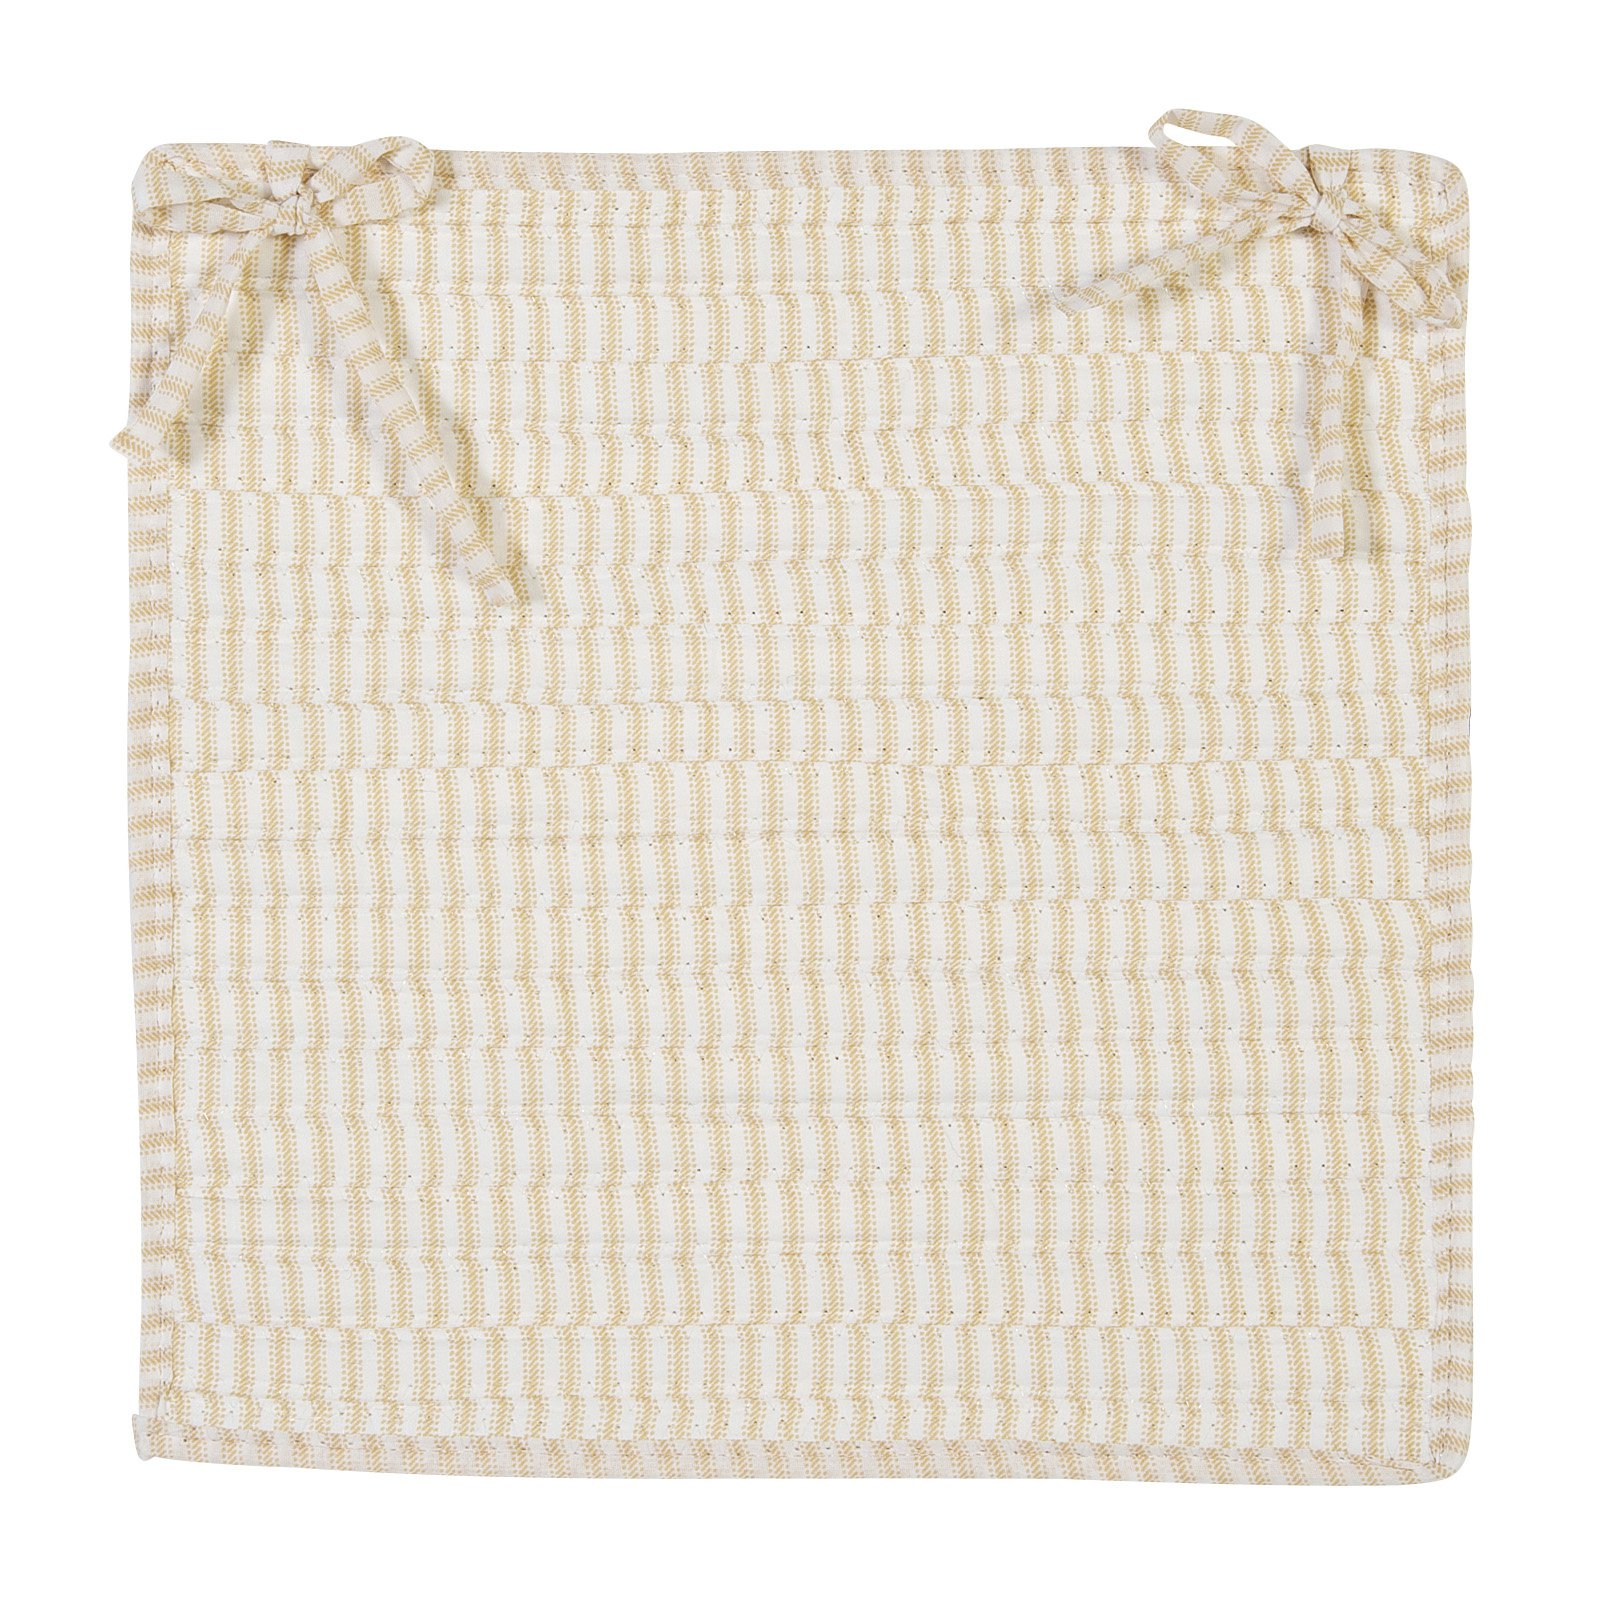 Colonial Mills Ticking Stripe Chair Pad Square 15 x 15 in. by Colonial Mills